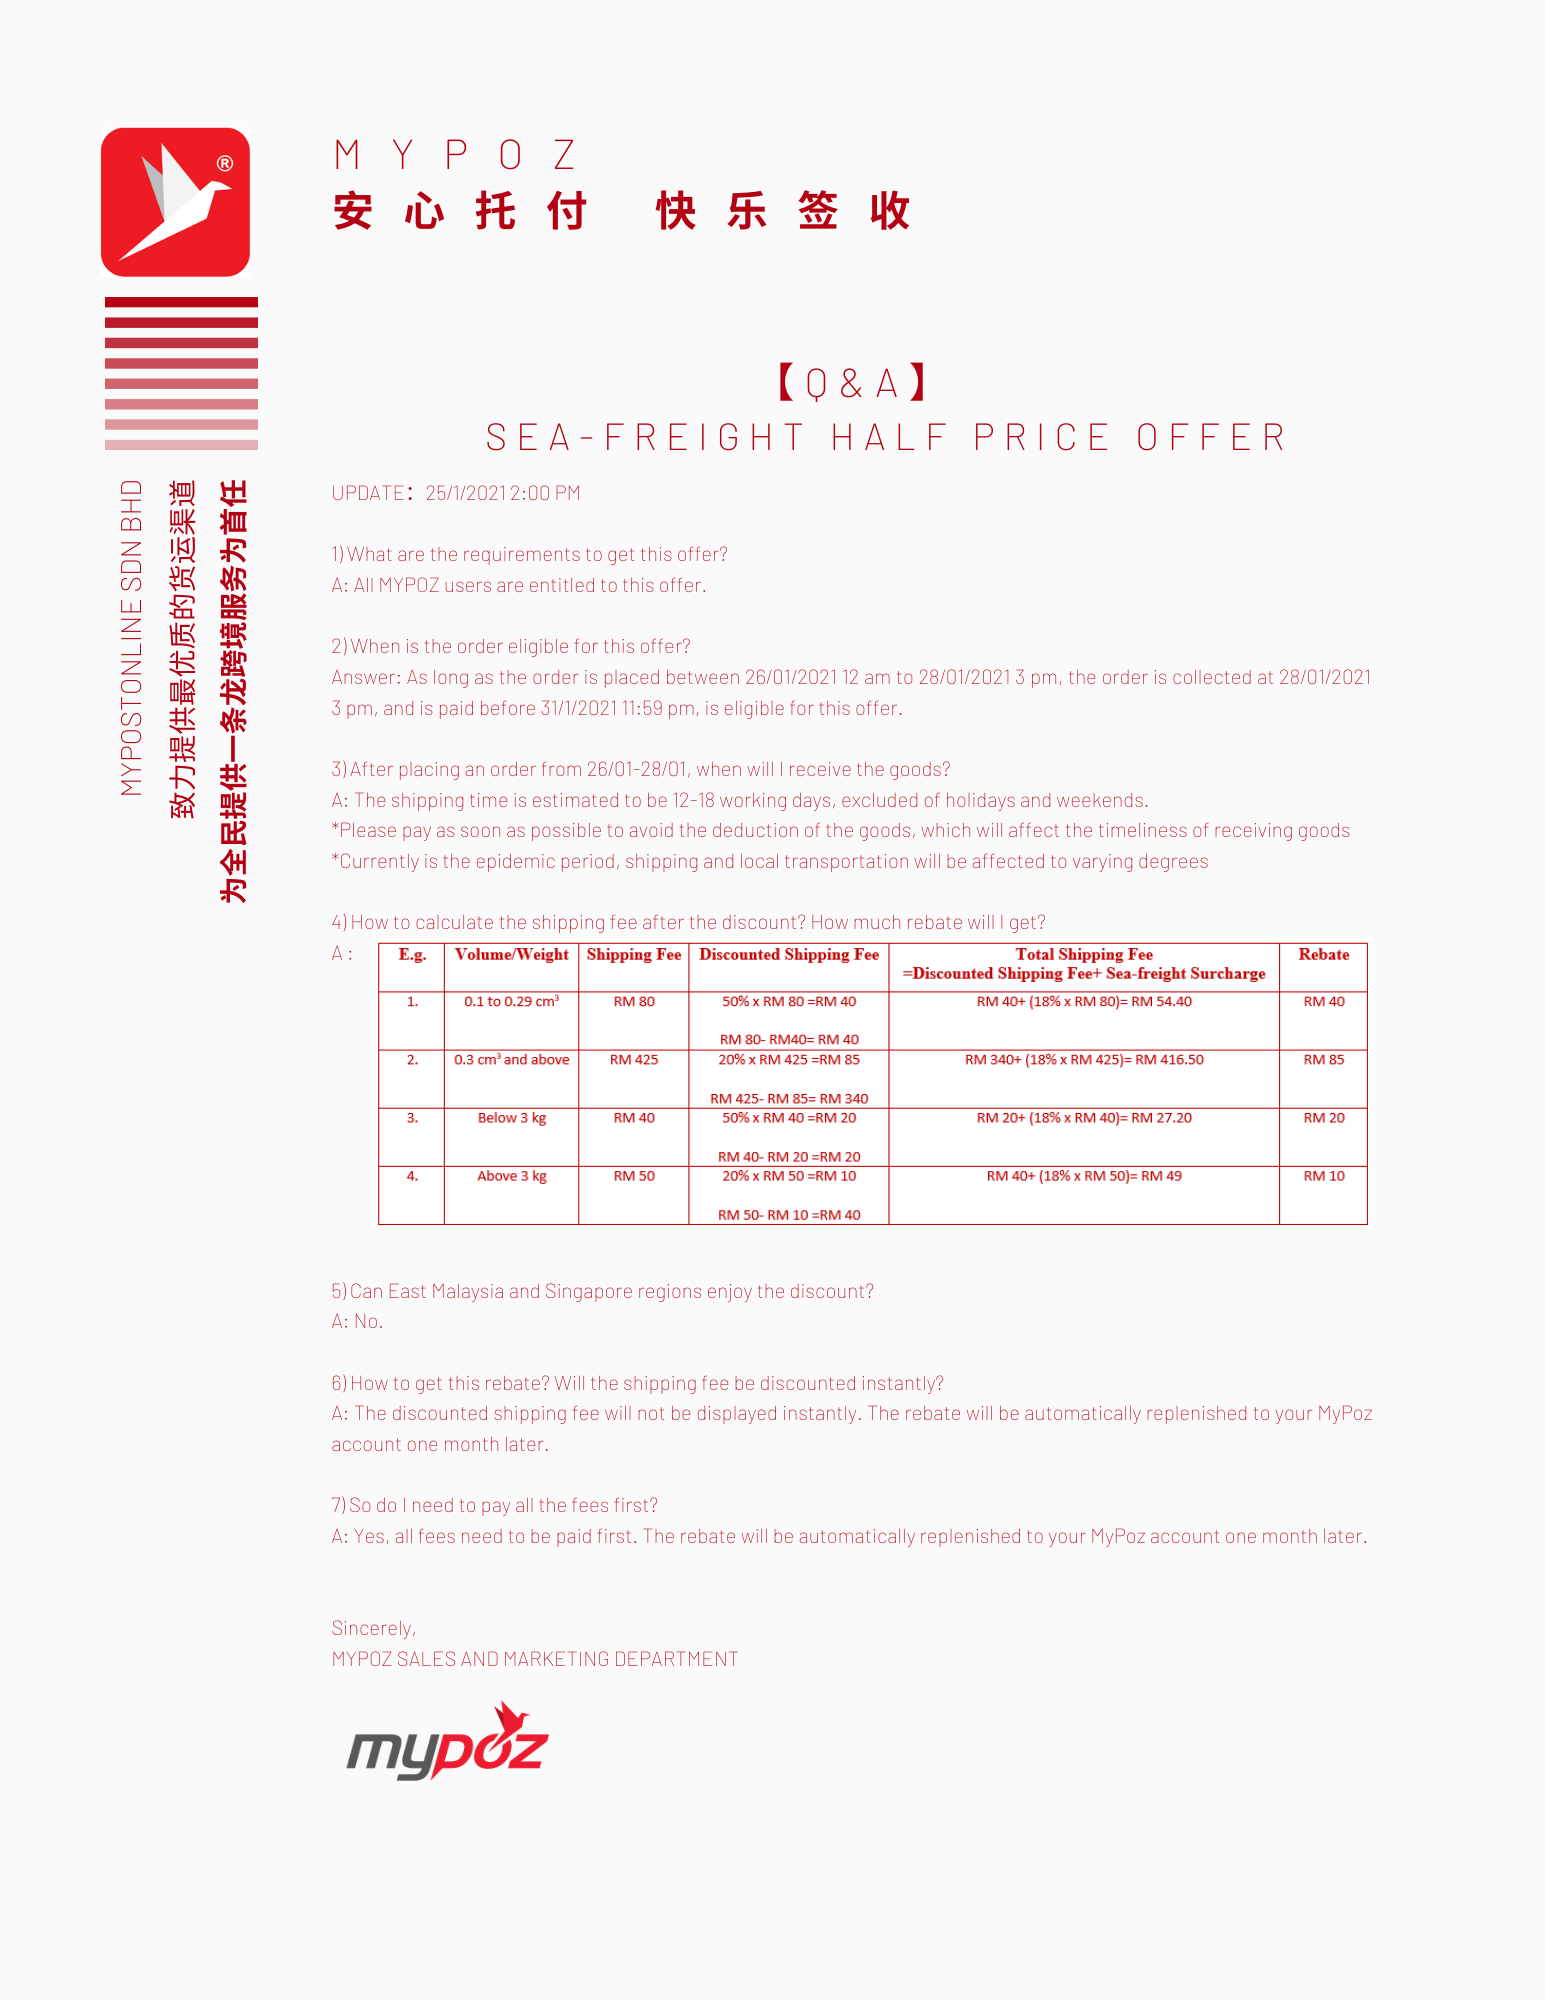 【Q&A】SEA-FREIGHT HALF PRICE OFFER